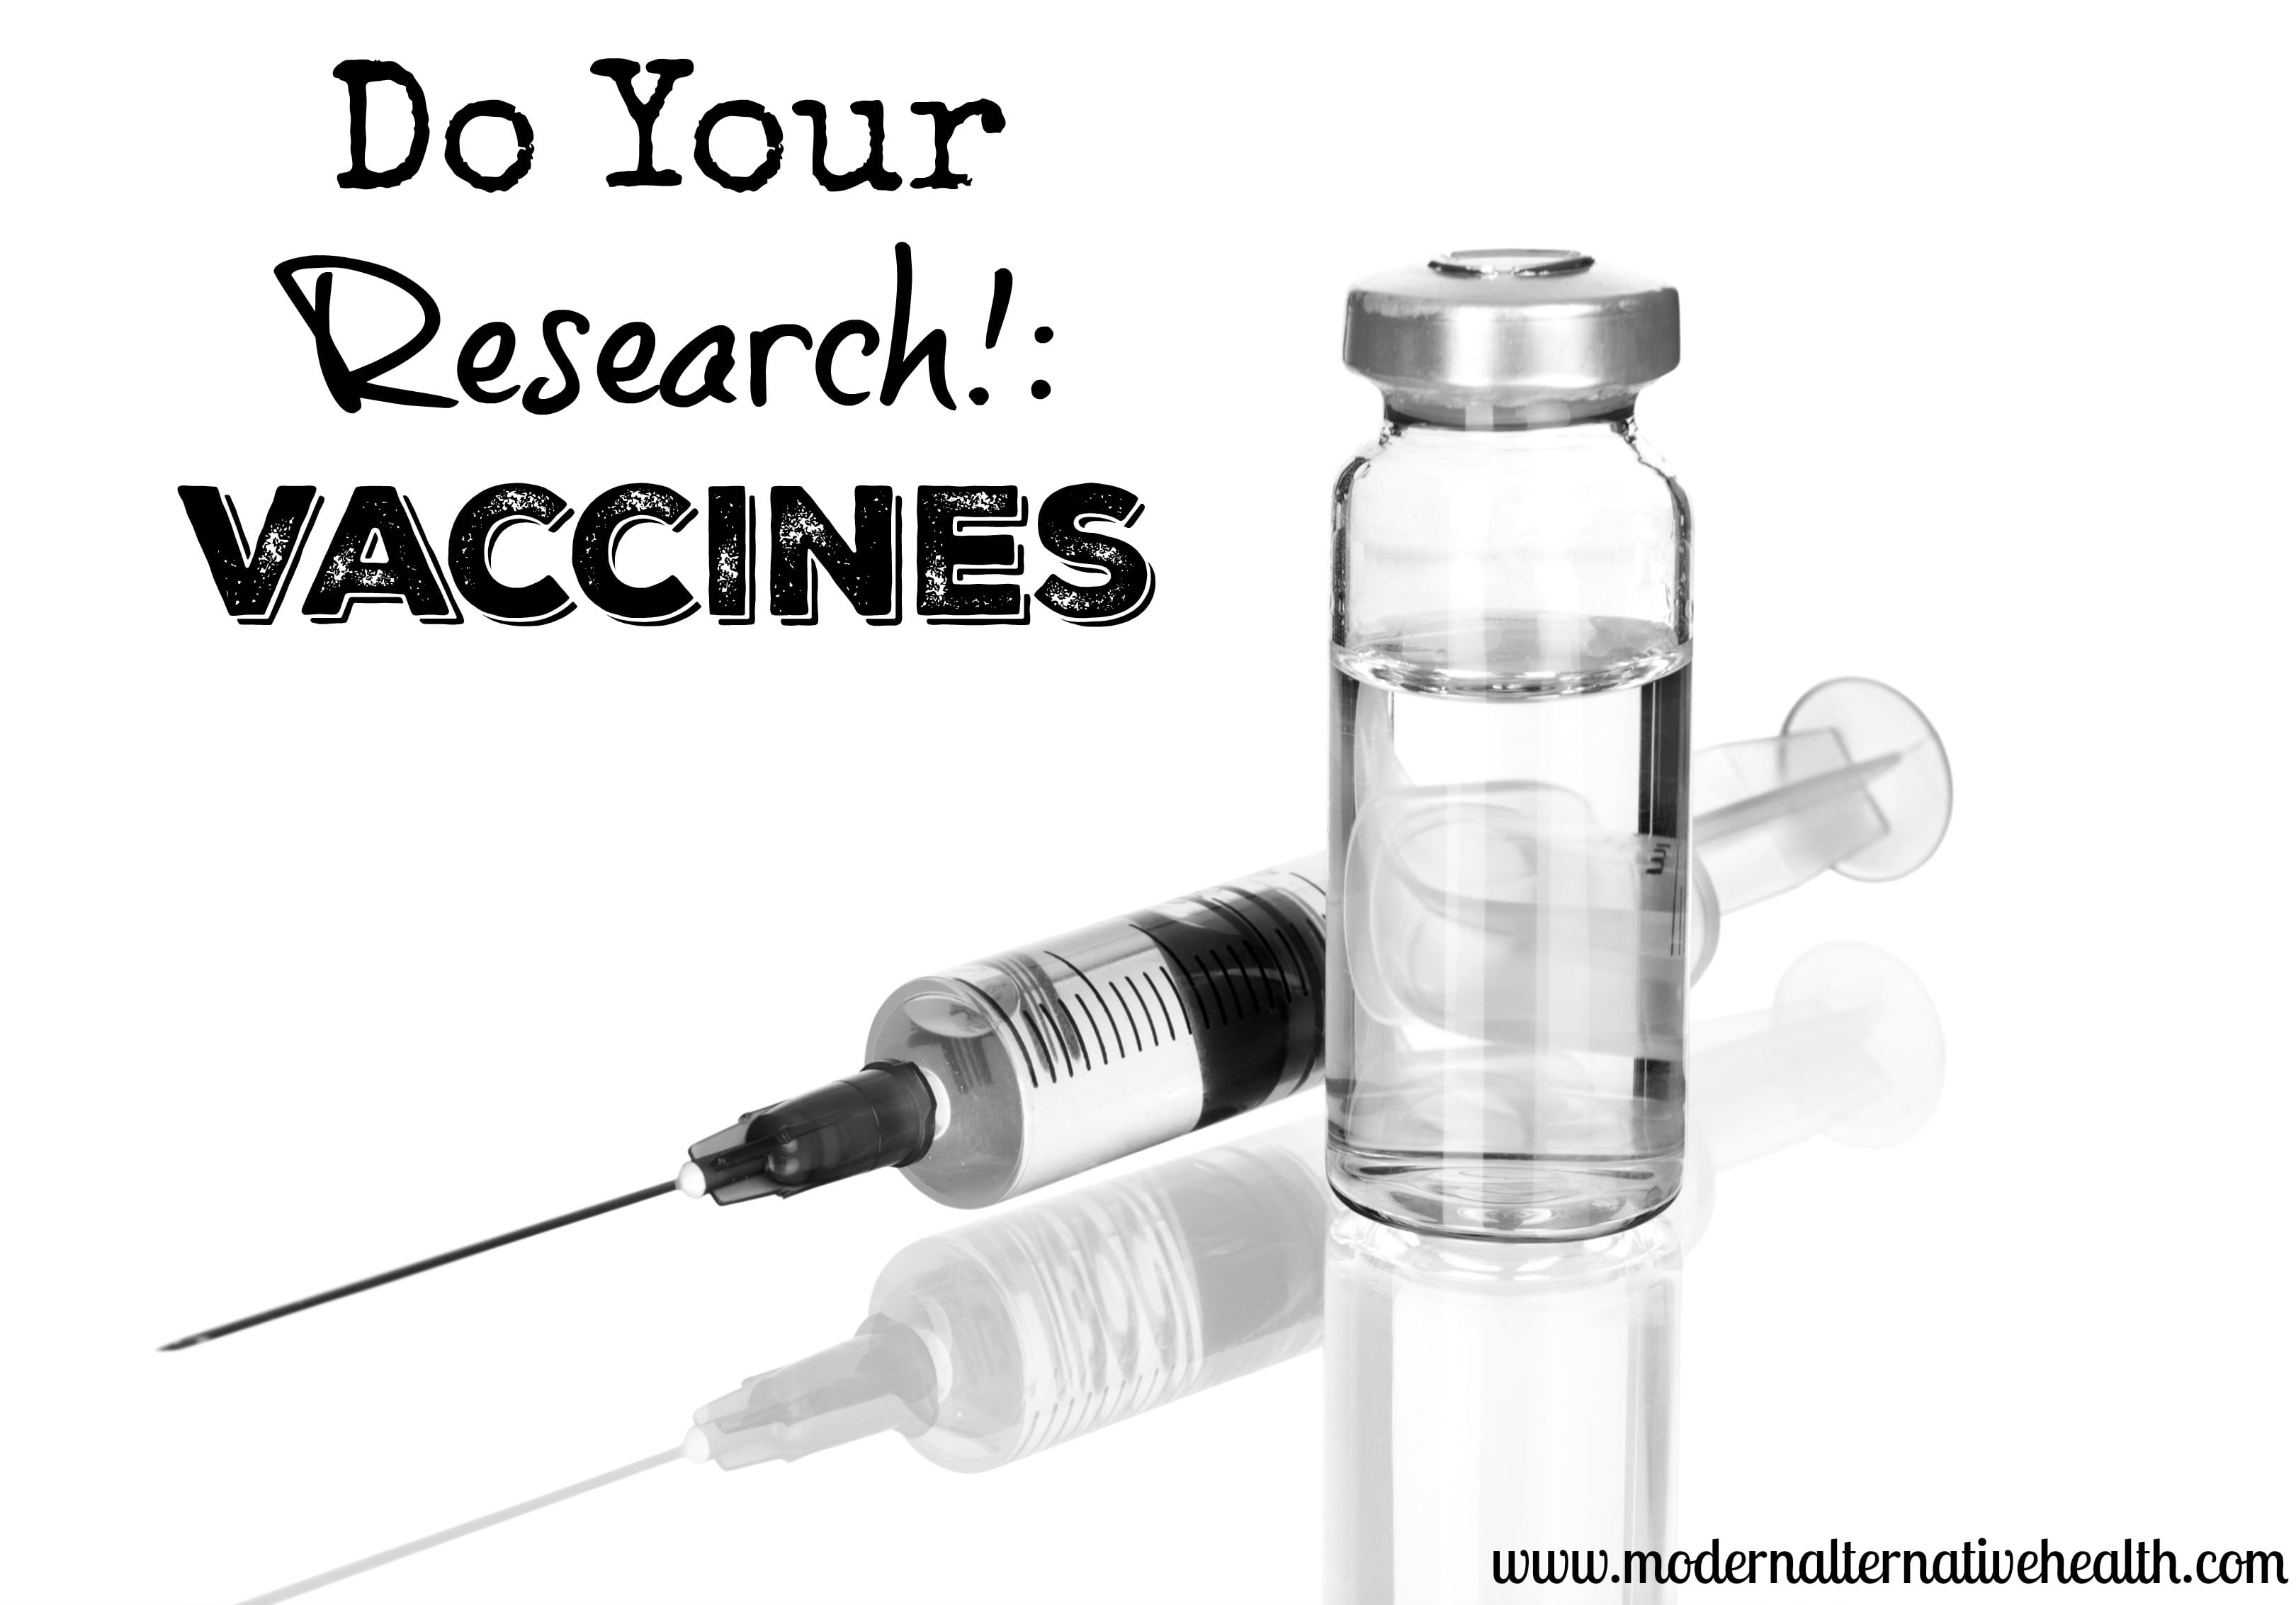 research vaccines